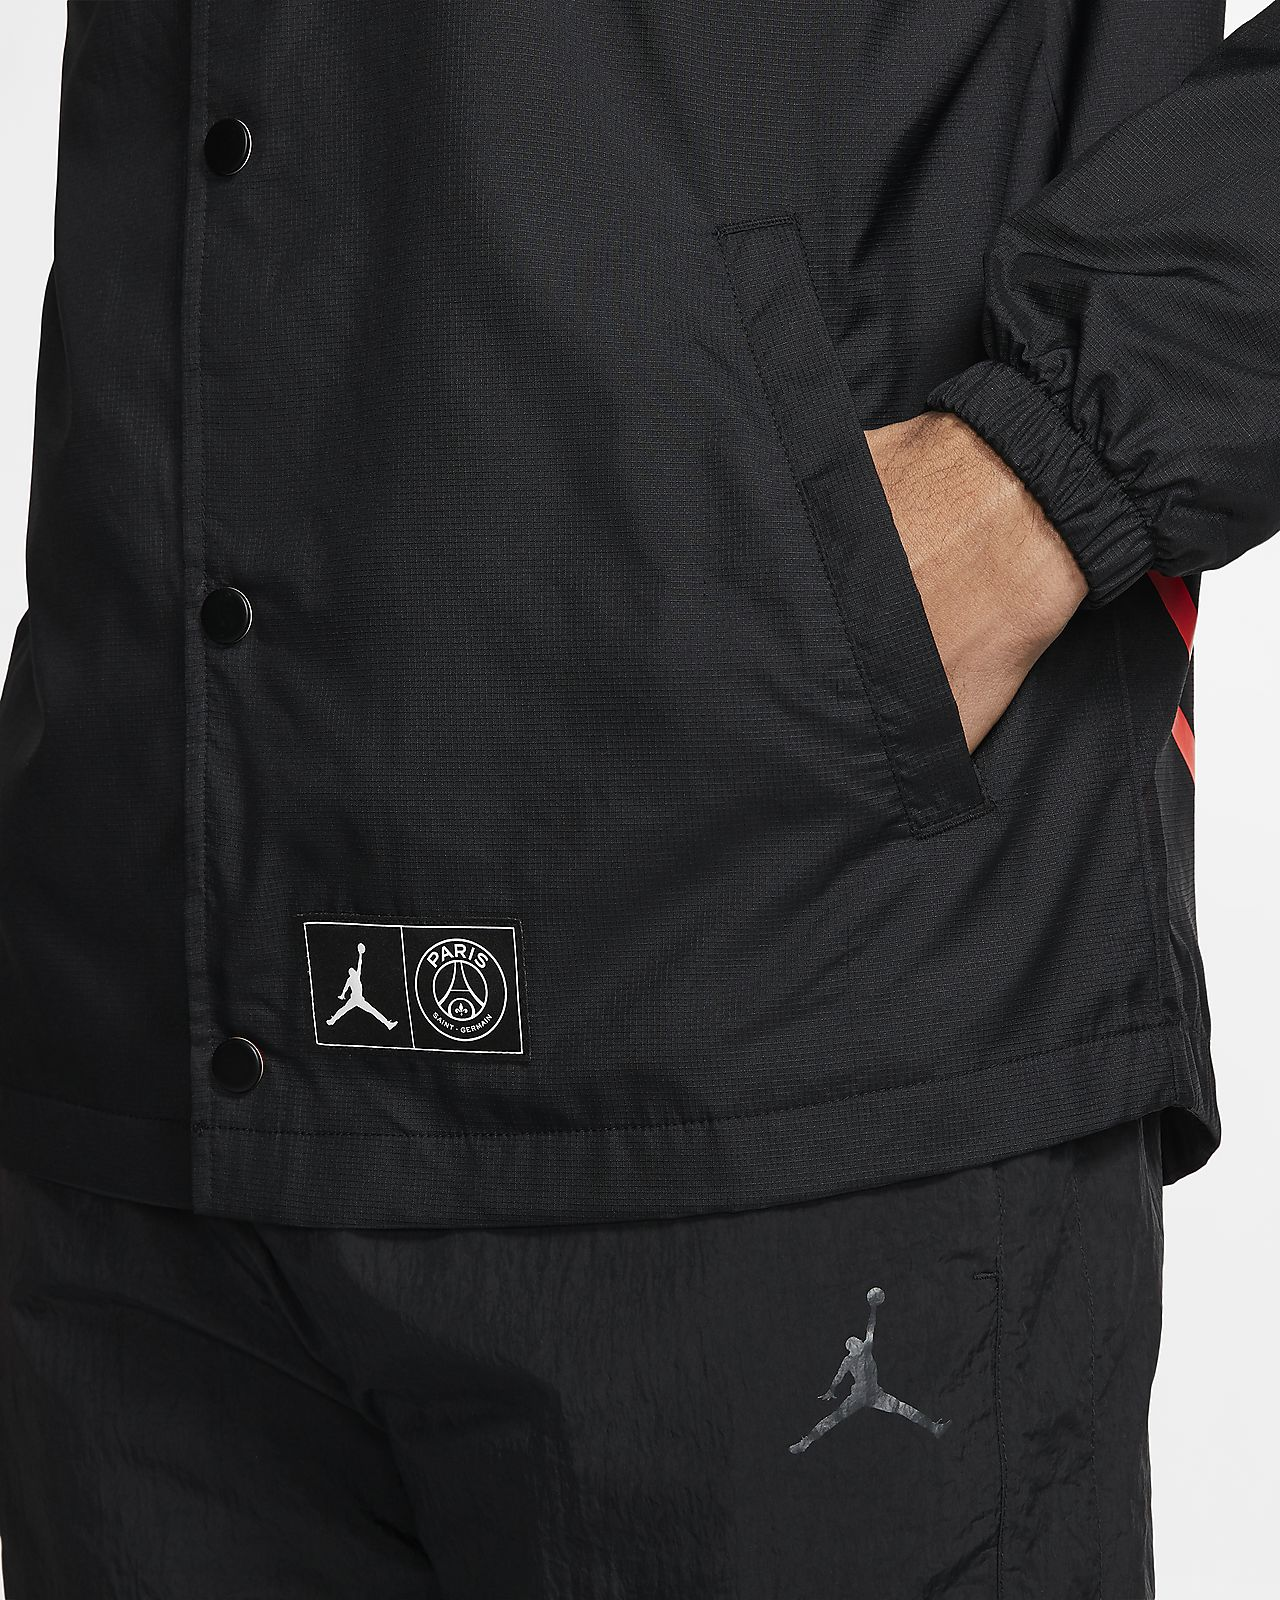 NIKE JORDAN X PSG COACHES JACKET